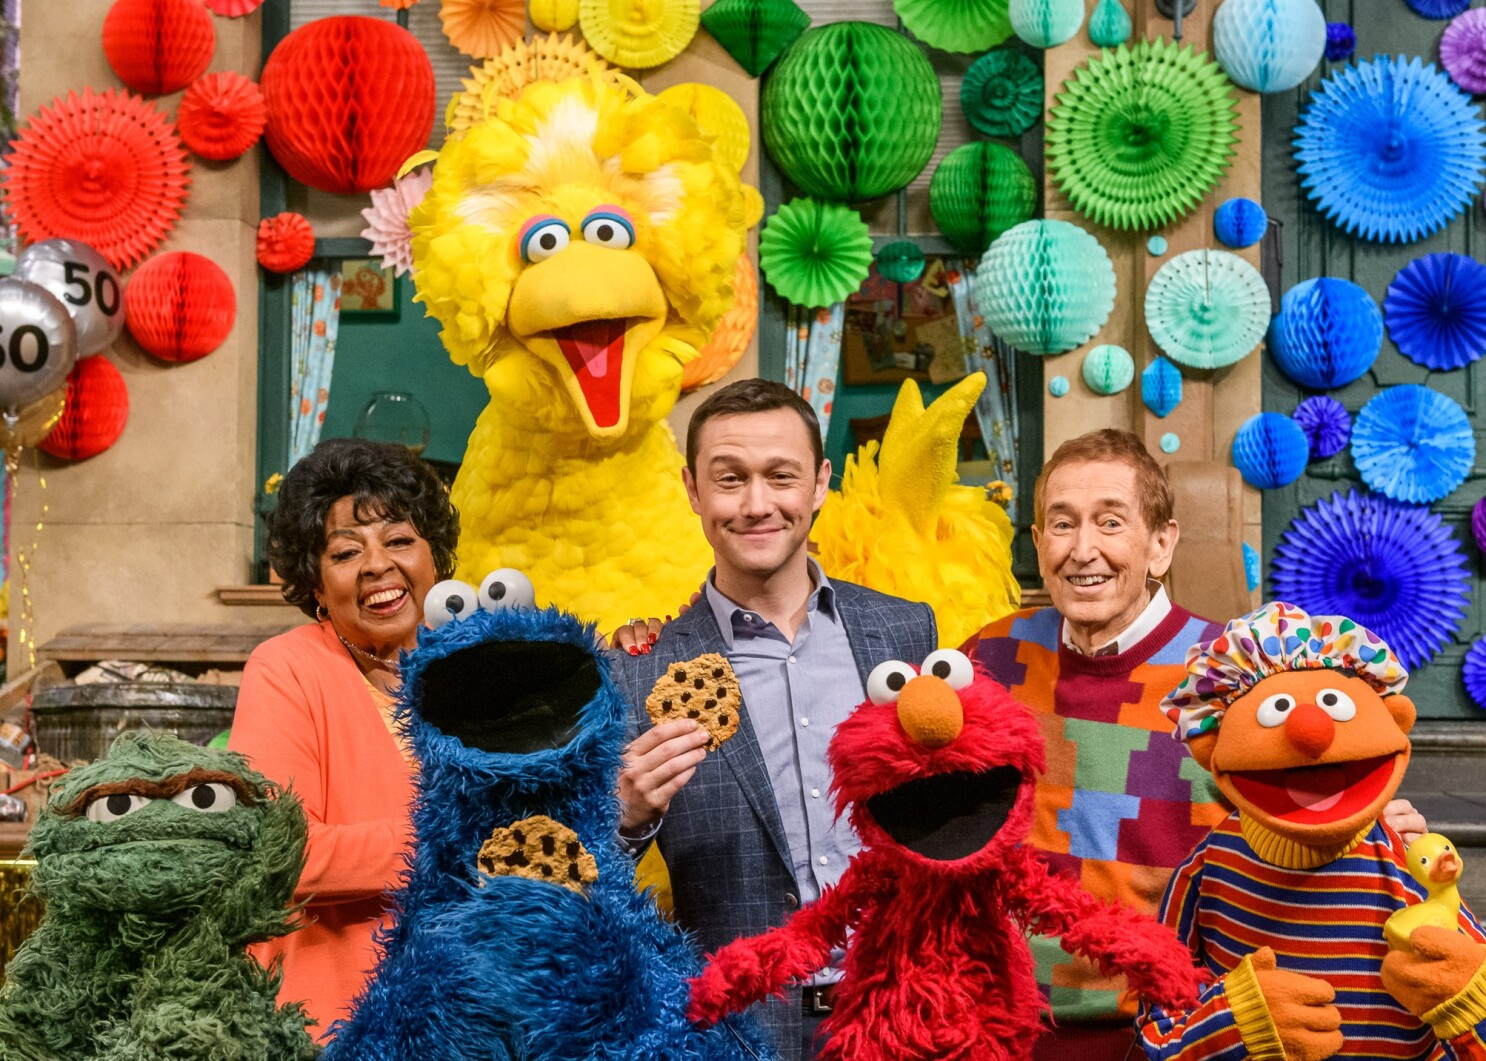 Sesame Street' celebrates 50th anniversary with star power - Los ...